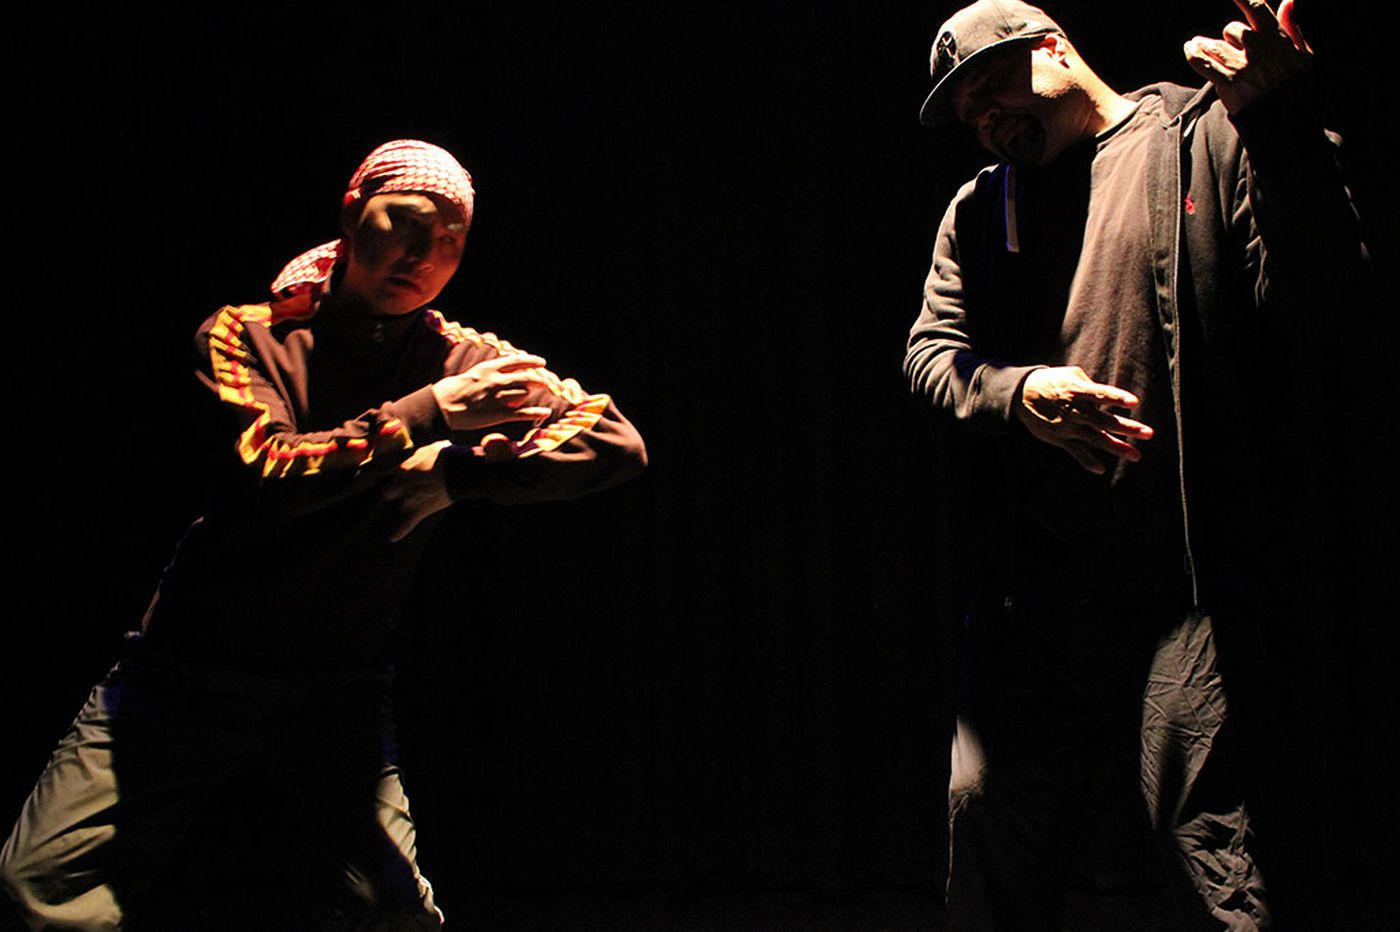 Hip hop and butoh align, evolve